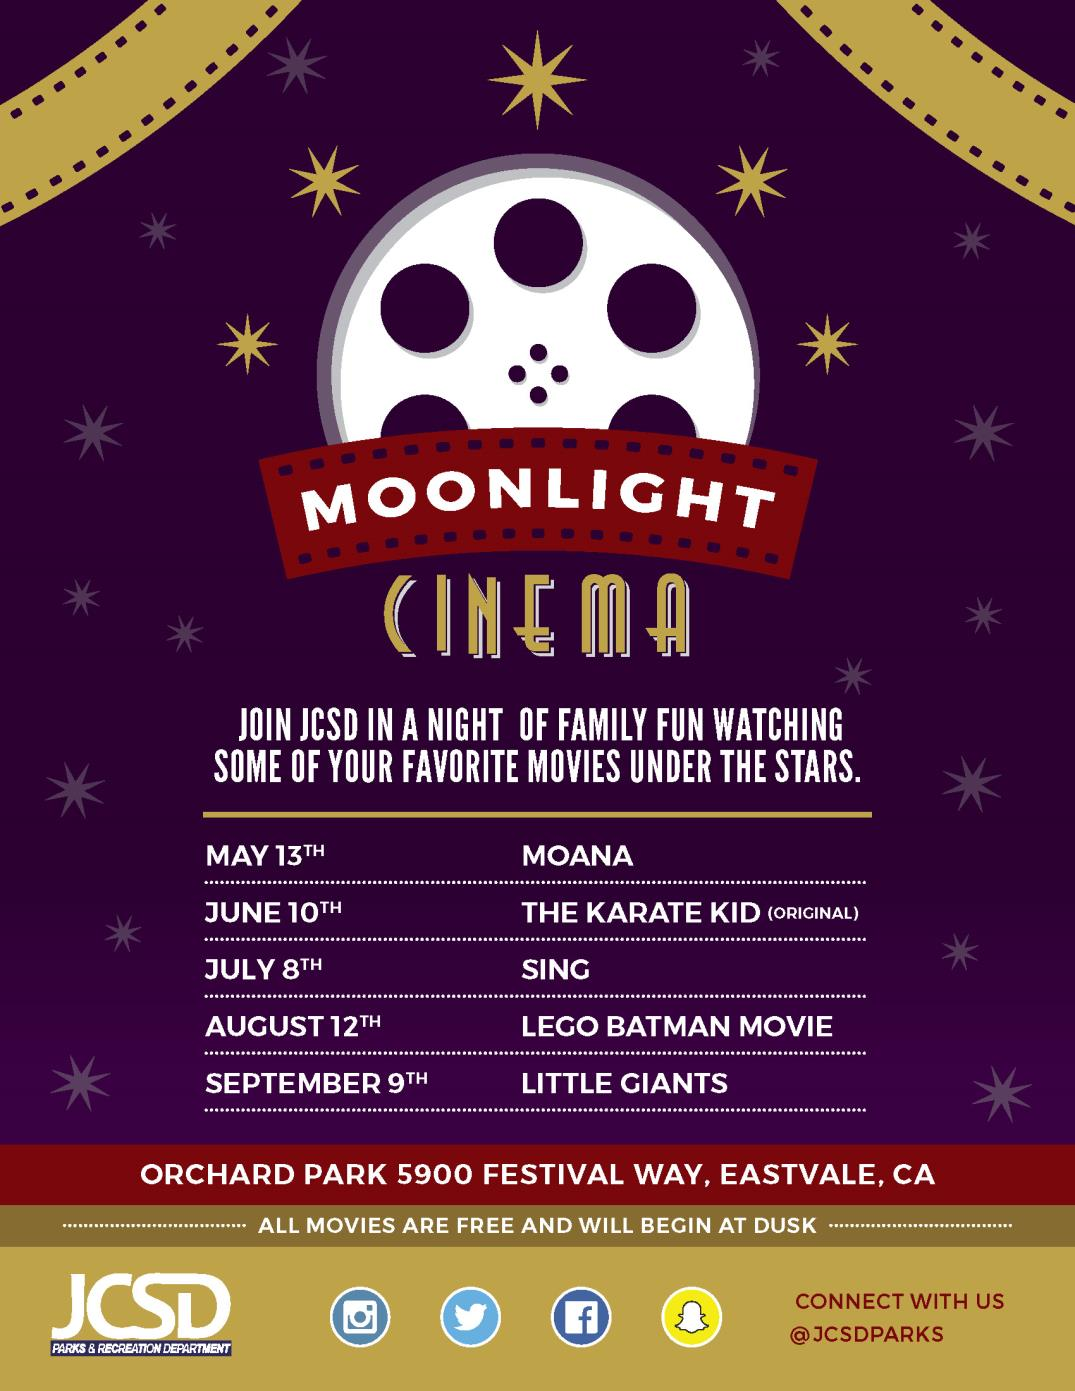 JCSD-Monlight-Cinema-Flyer